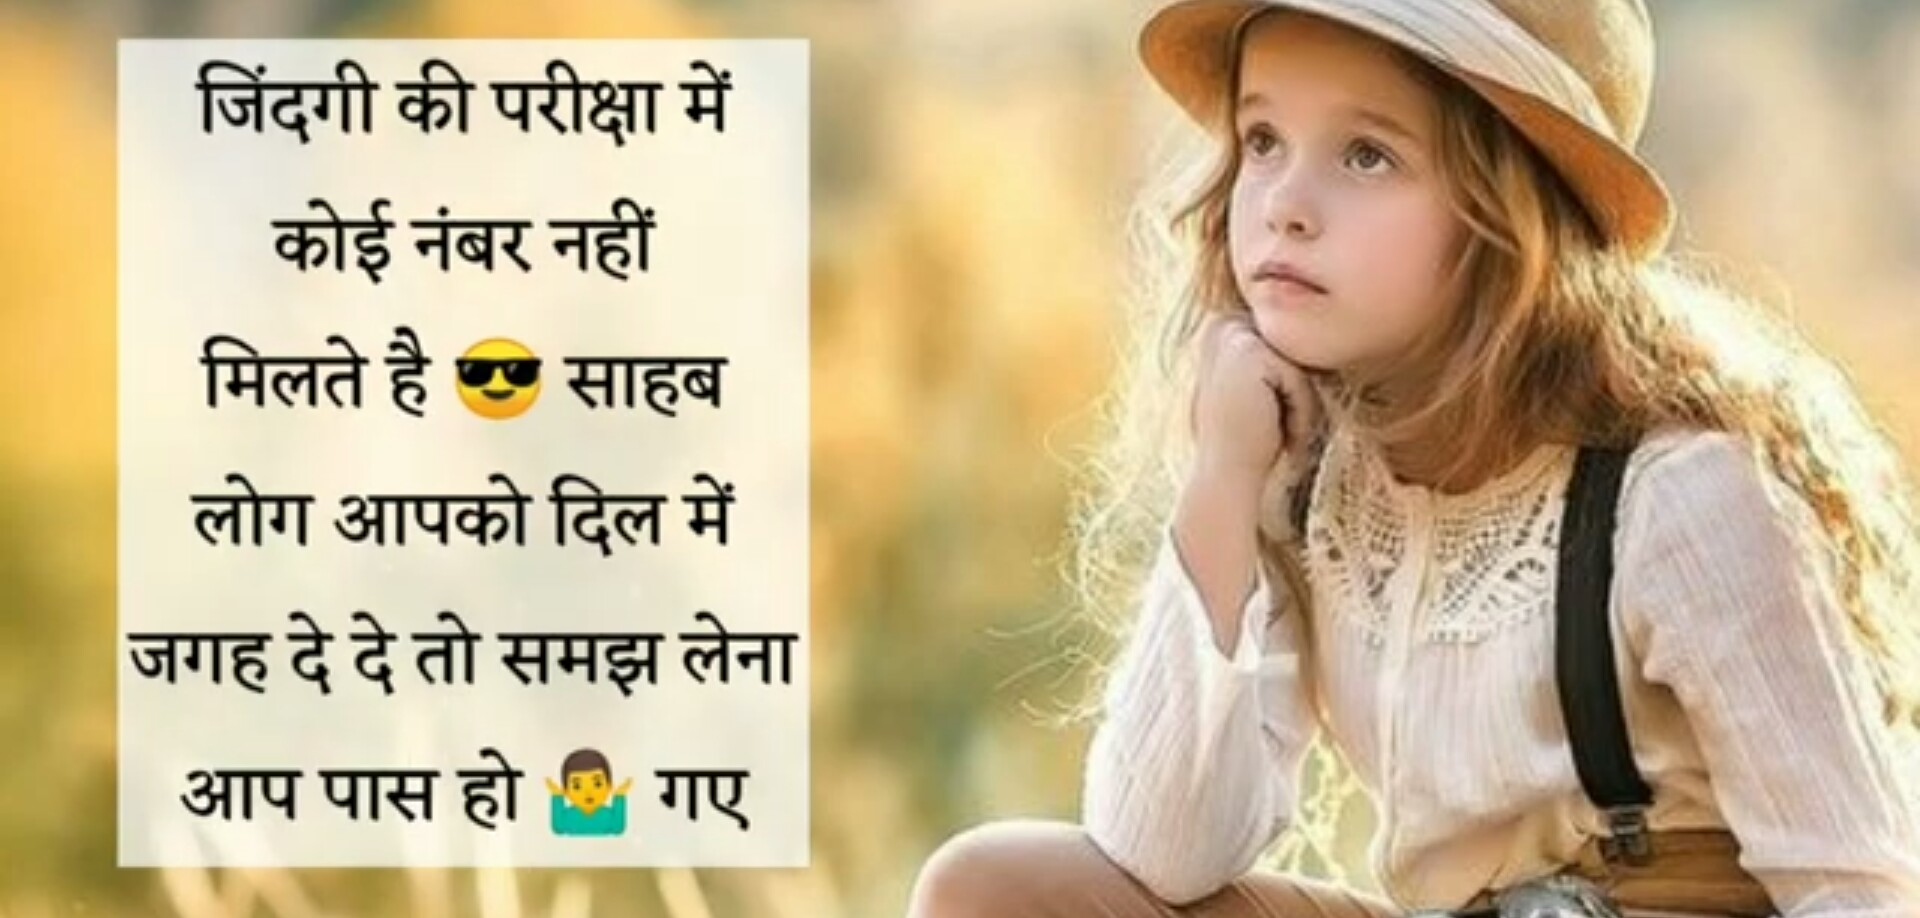 20 Positive Quotes About Life in Hindi   Short positive quotes ...